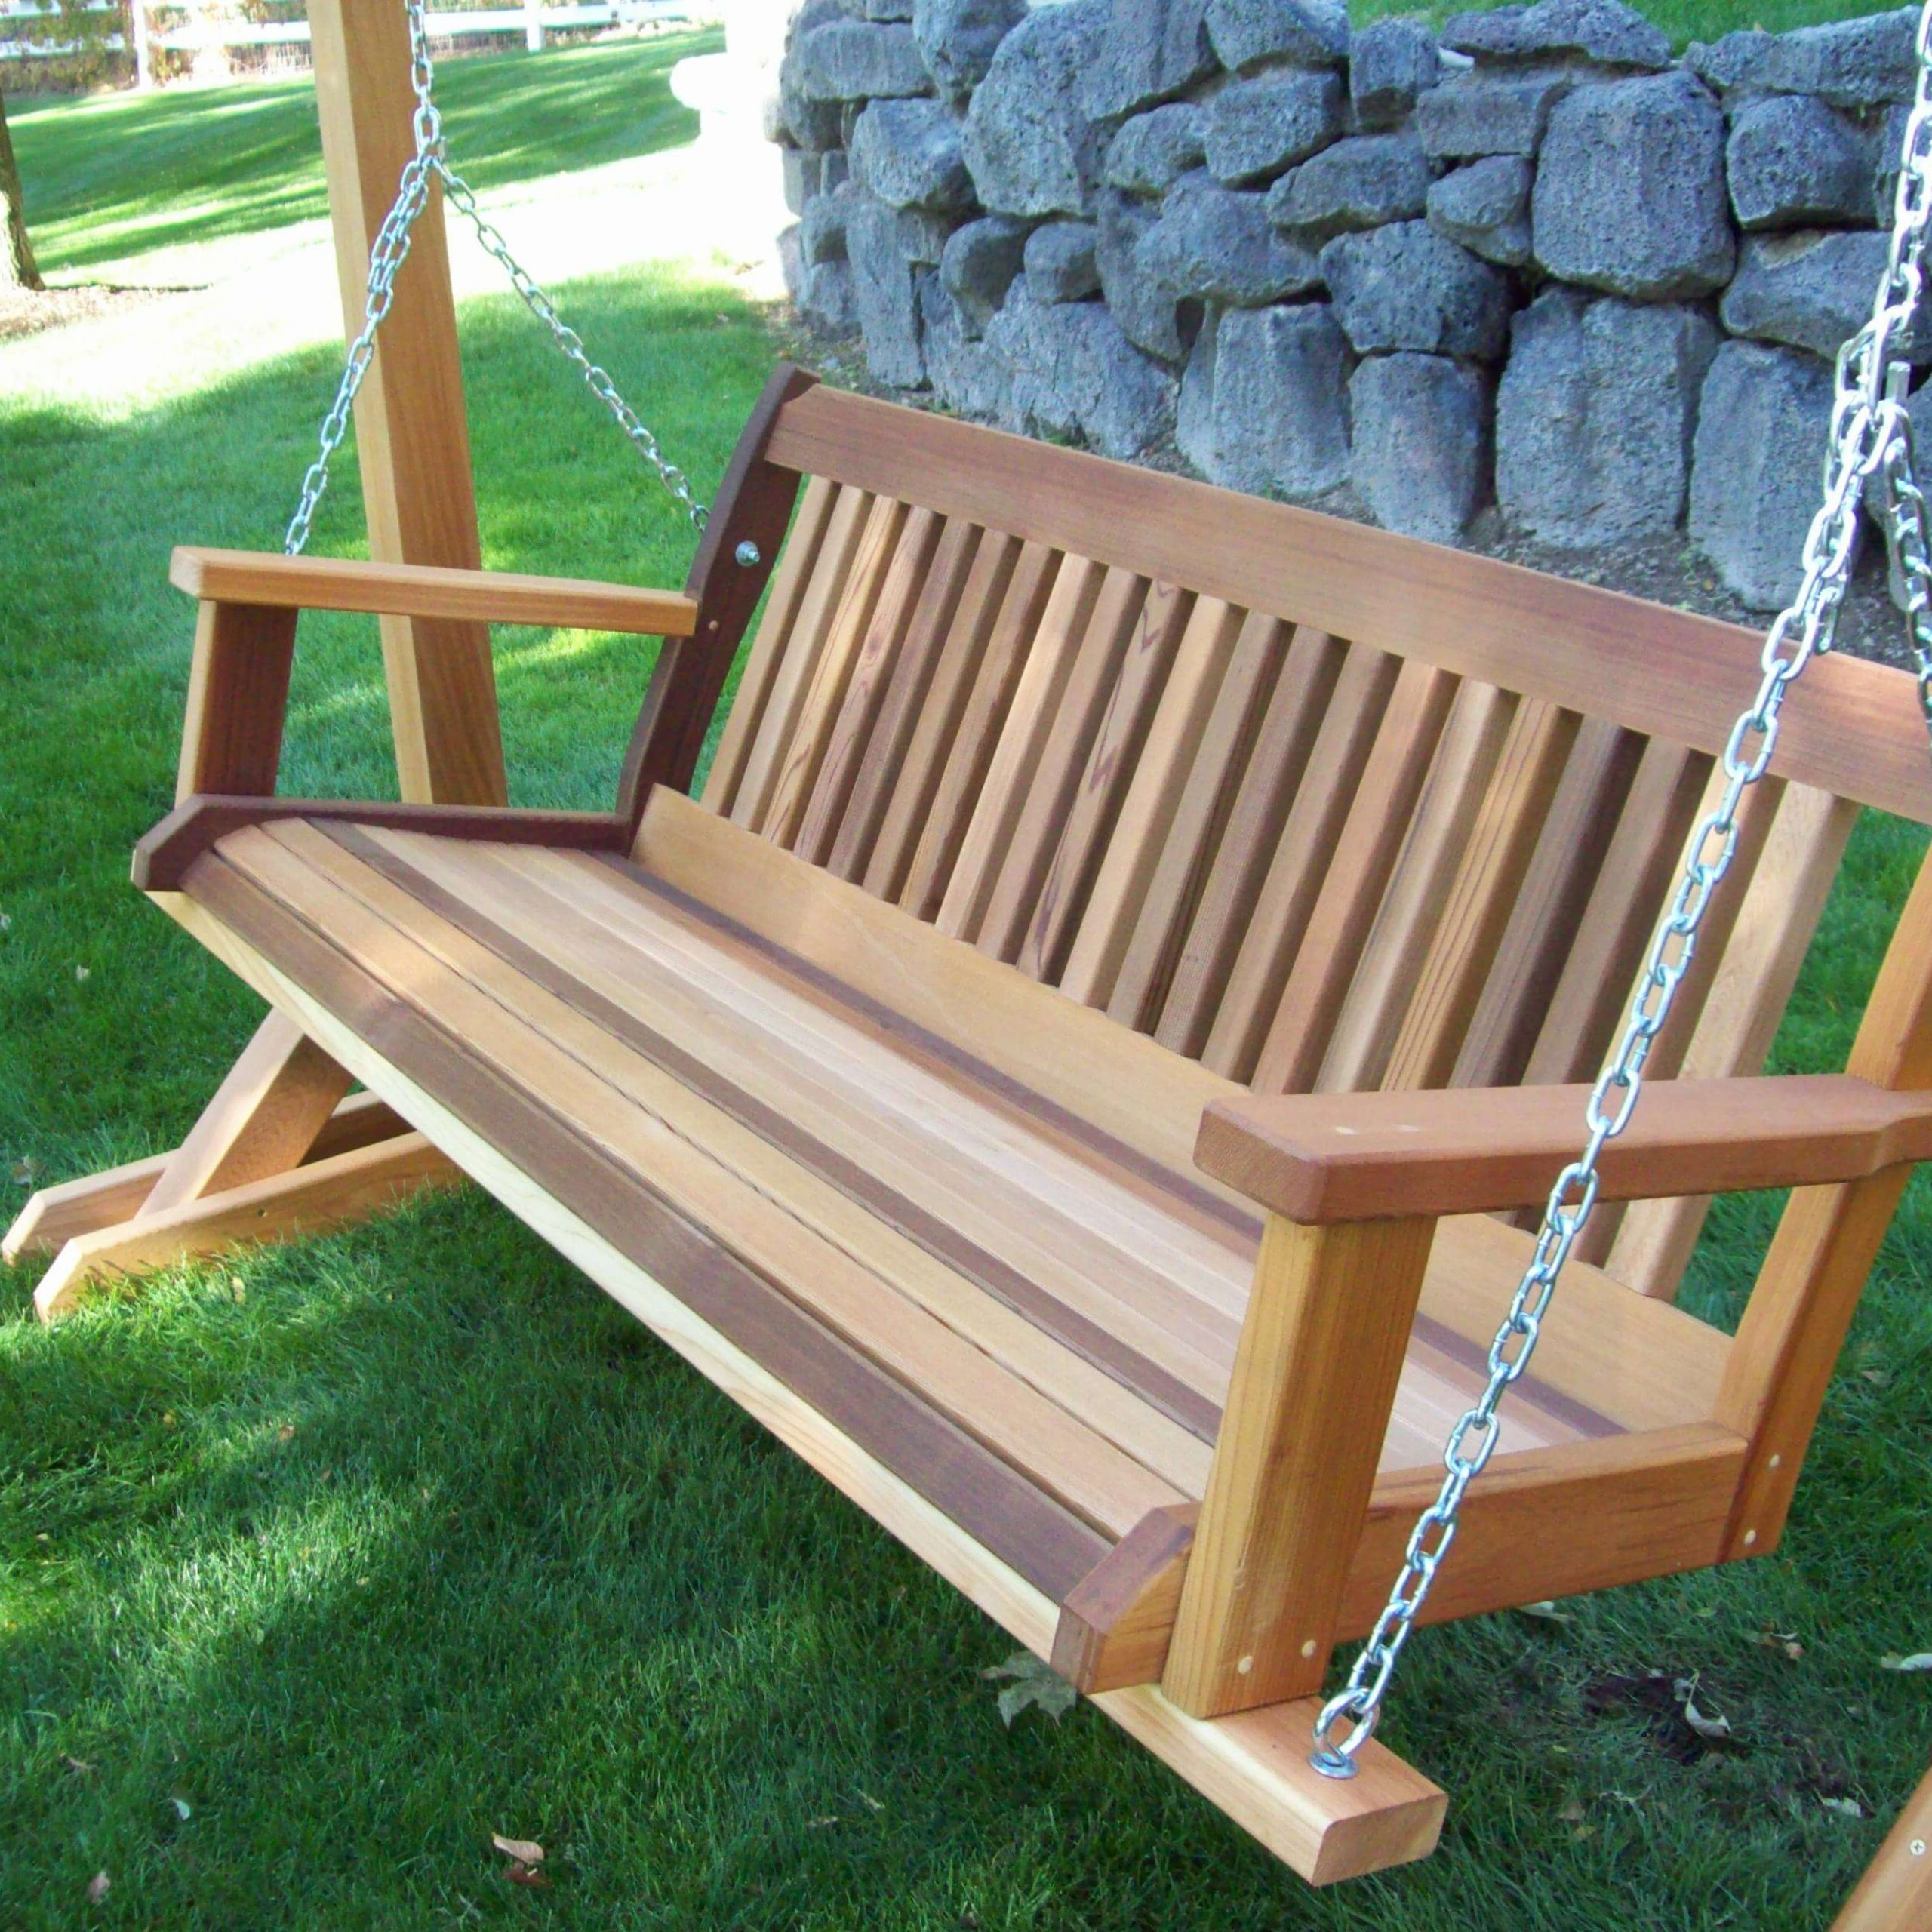 The Hammock Expert Intended For 3 Person Natural Cedar Wood Outdoor Swings (View 24 of 25)